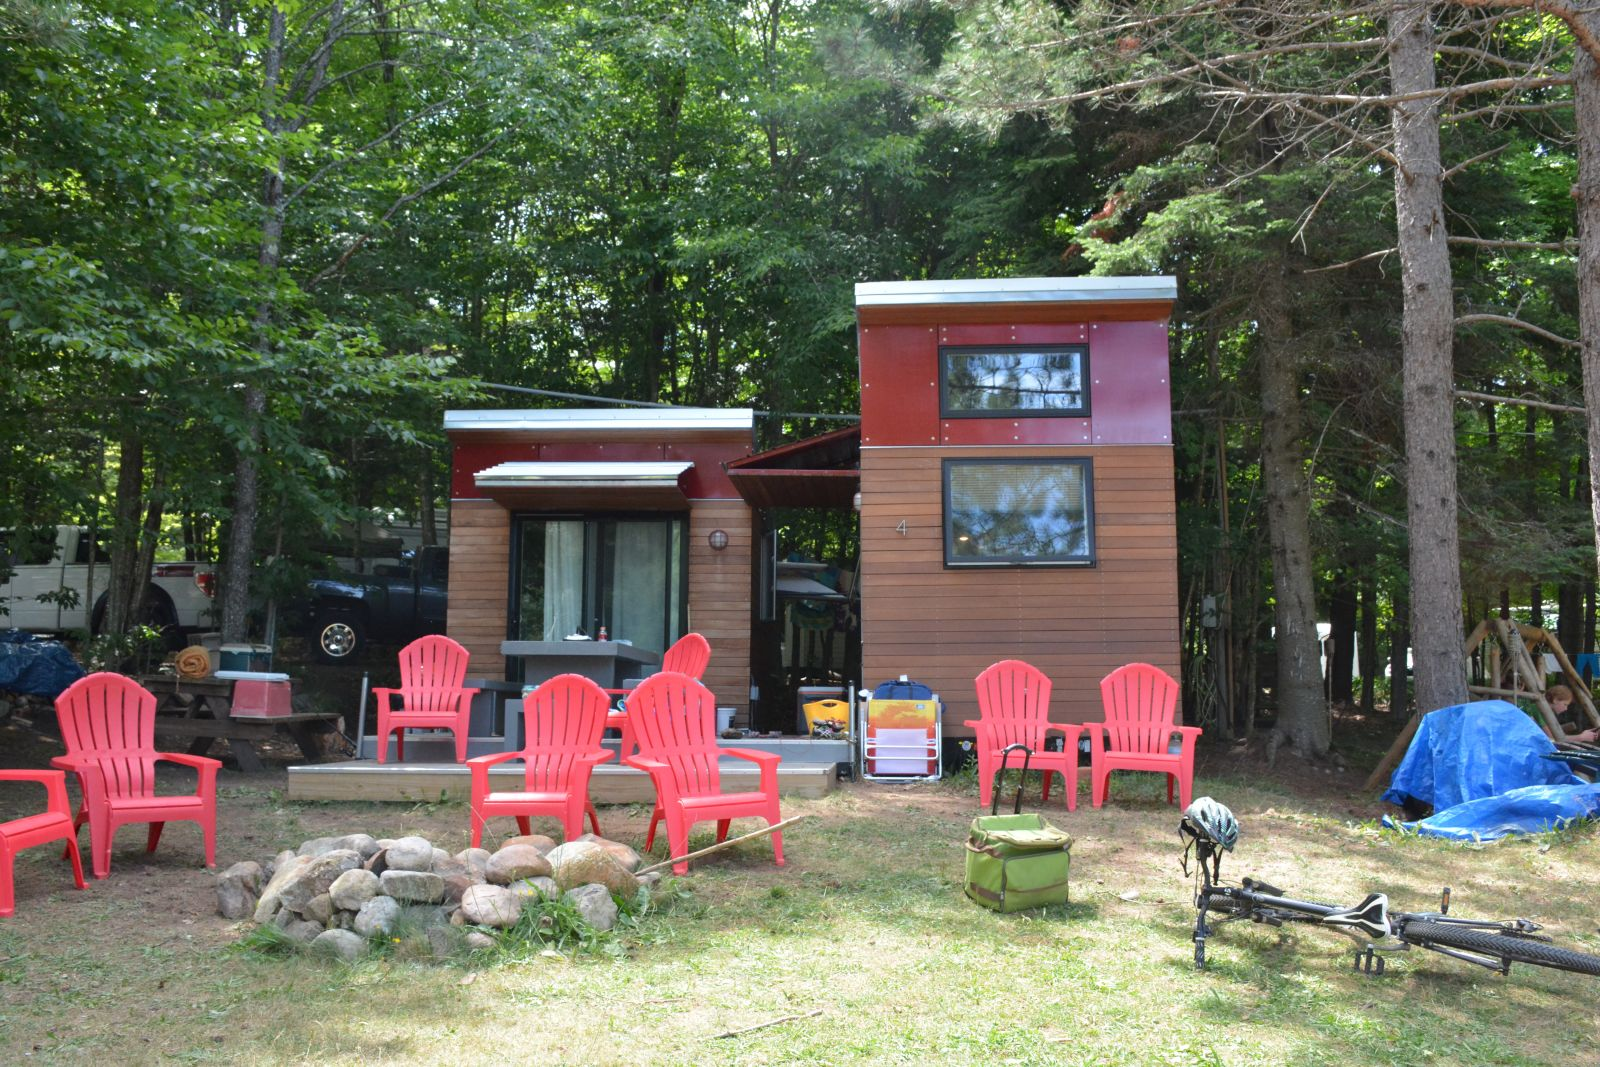 Each site presents a unique style of the campers' home away from home.